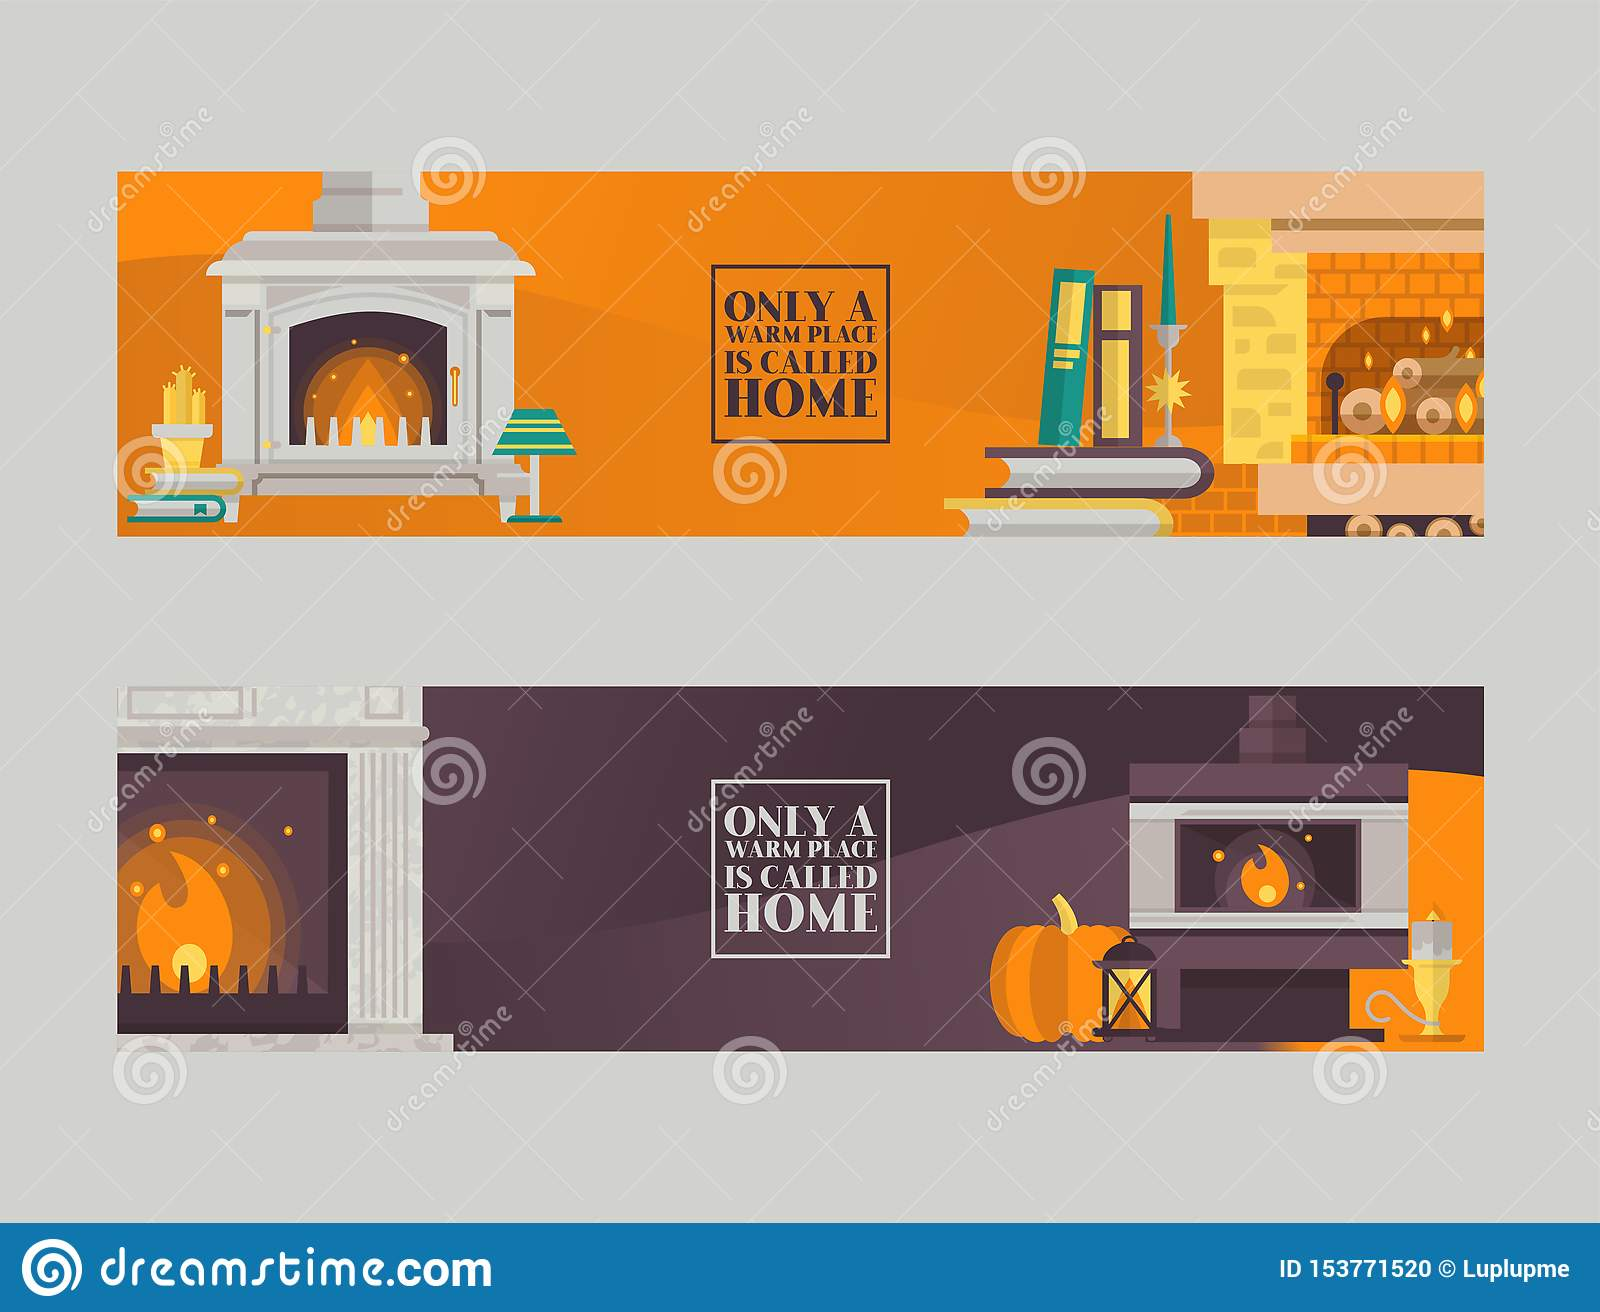 Fireplace In Cozy Home Living Room Interior Vector Illustration Lamps Books Pumpkin Near Fire Place With Flame Burning Stock Vector Illustration Of Decor Burning 153771520